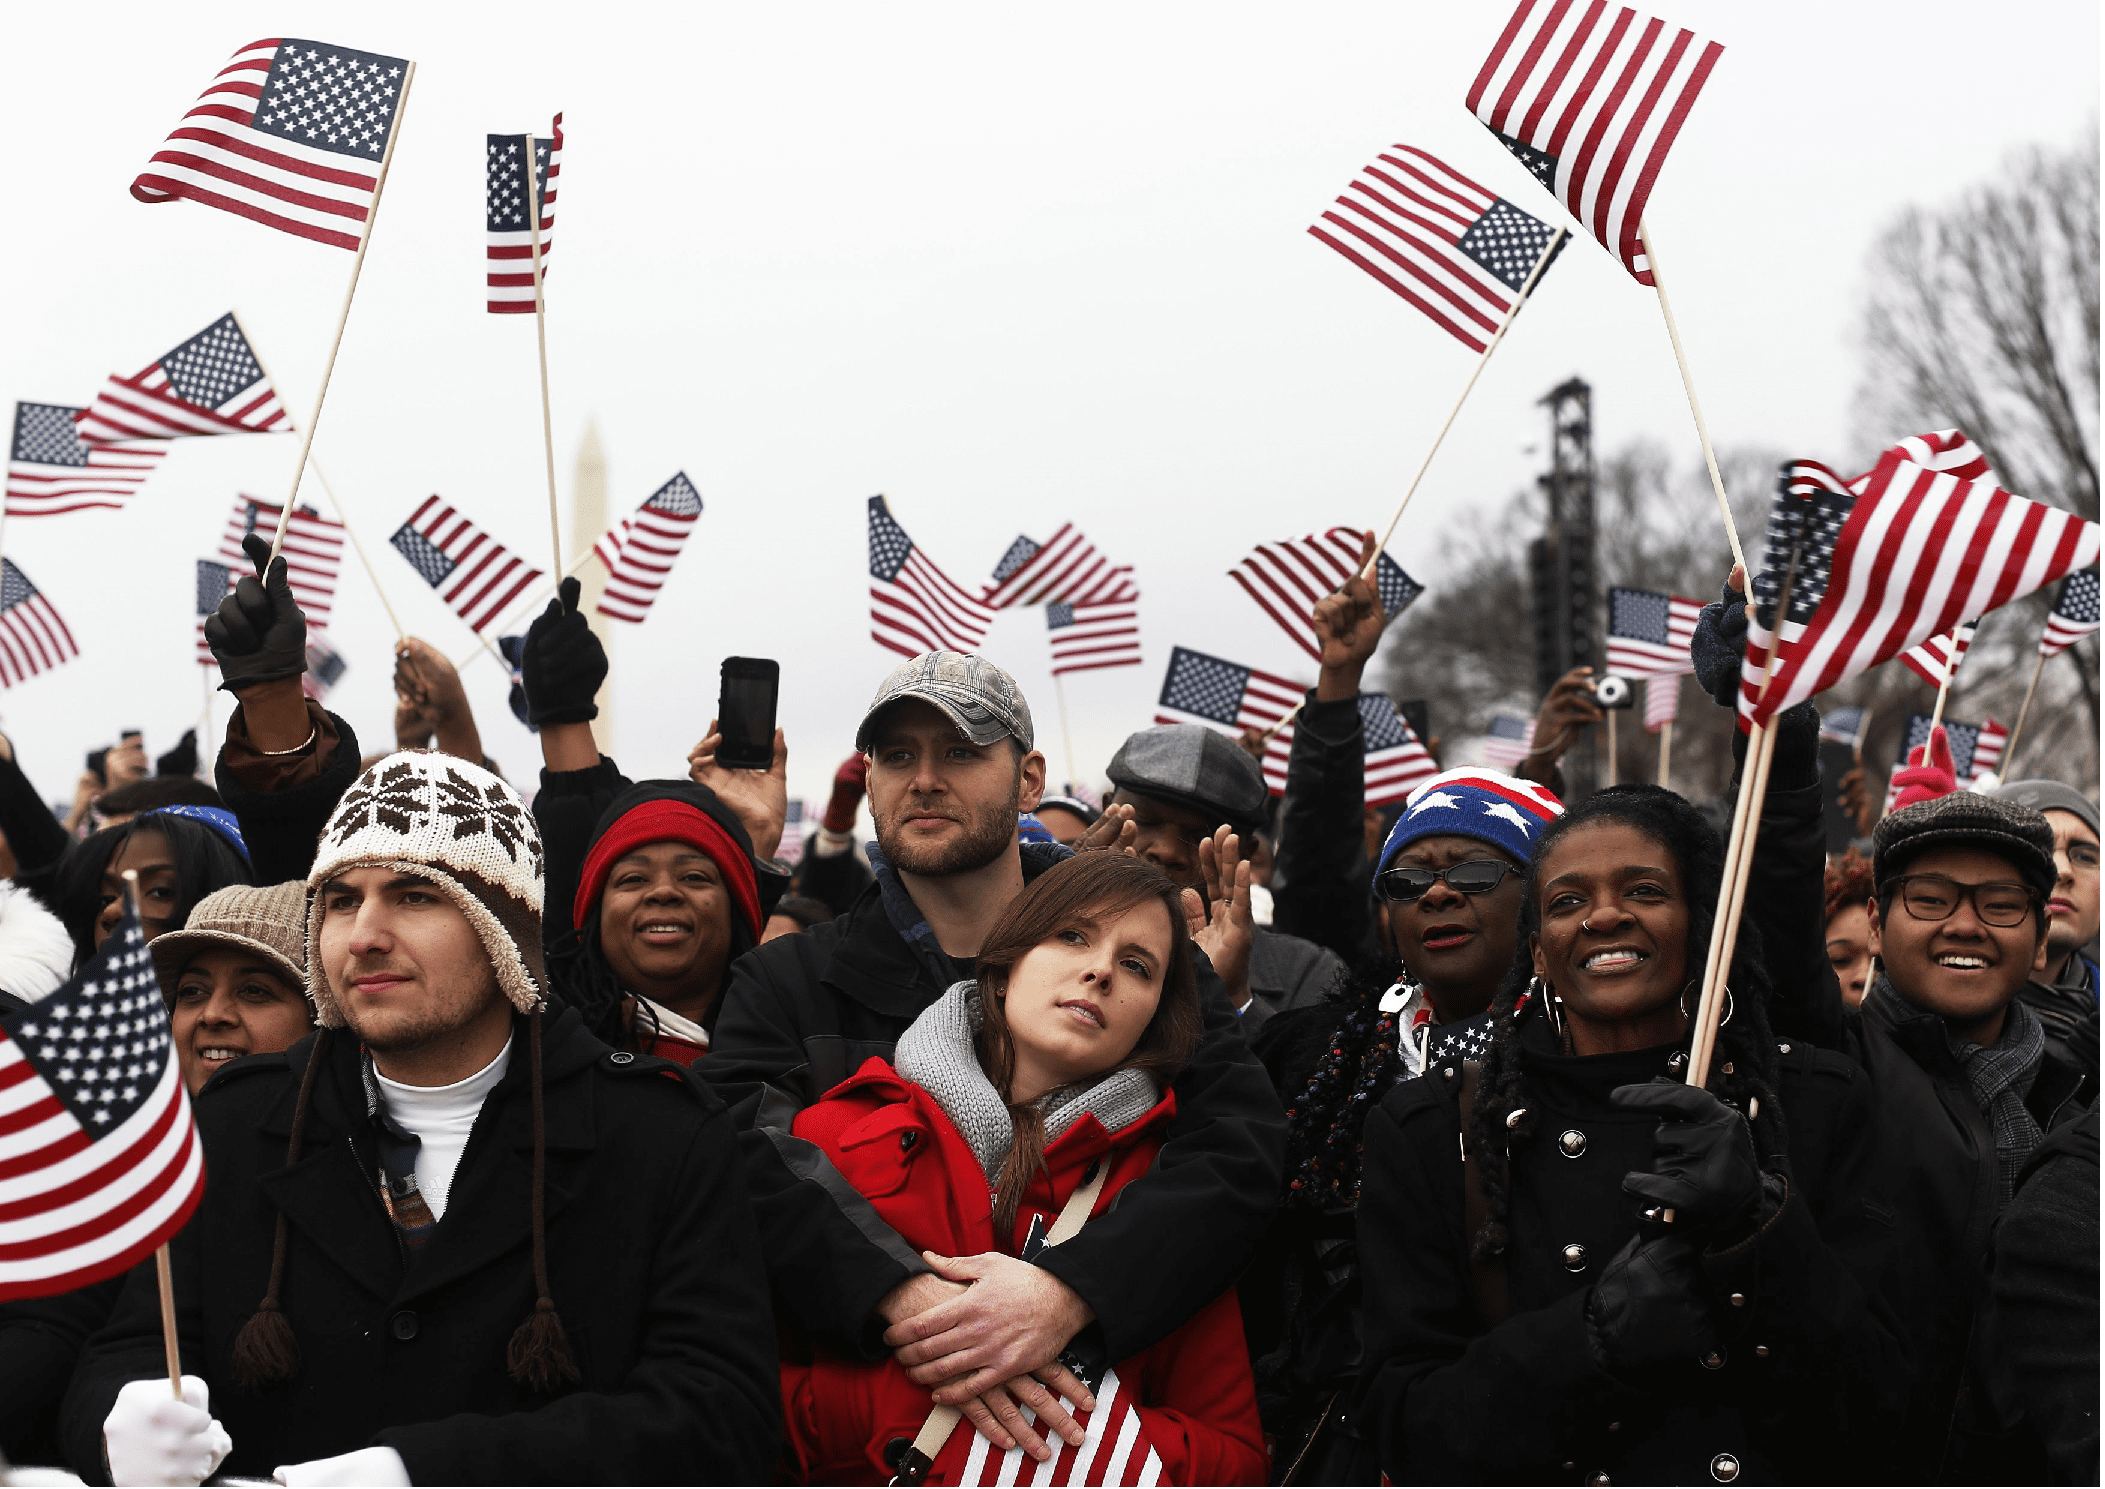 citizenship and diversity in america Citizenship is the status of a person recognized under the custom or law as being a legal member of a sovereign state or belonging to a nation a person may have multiple citizenships.